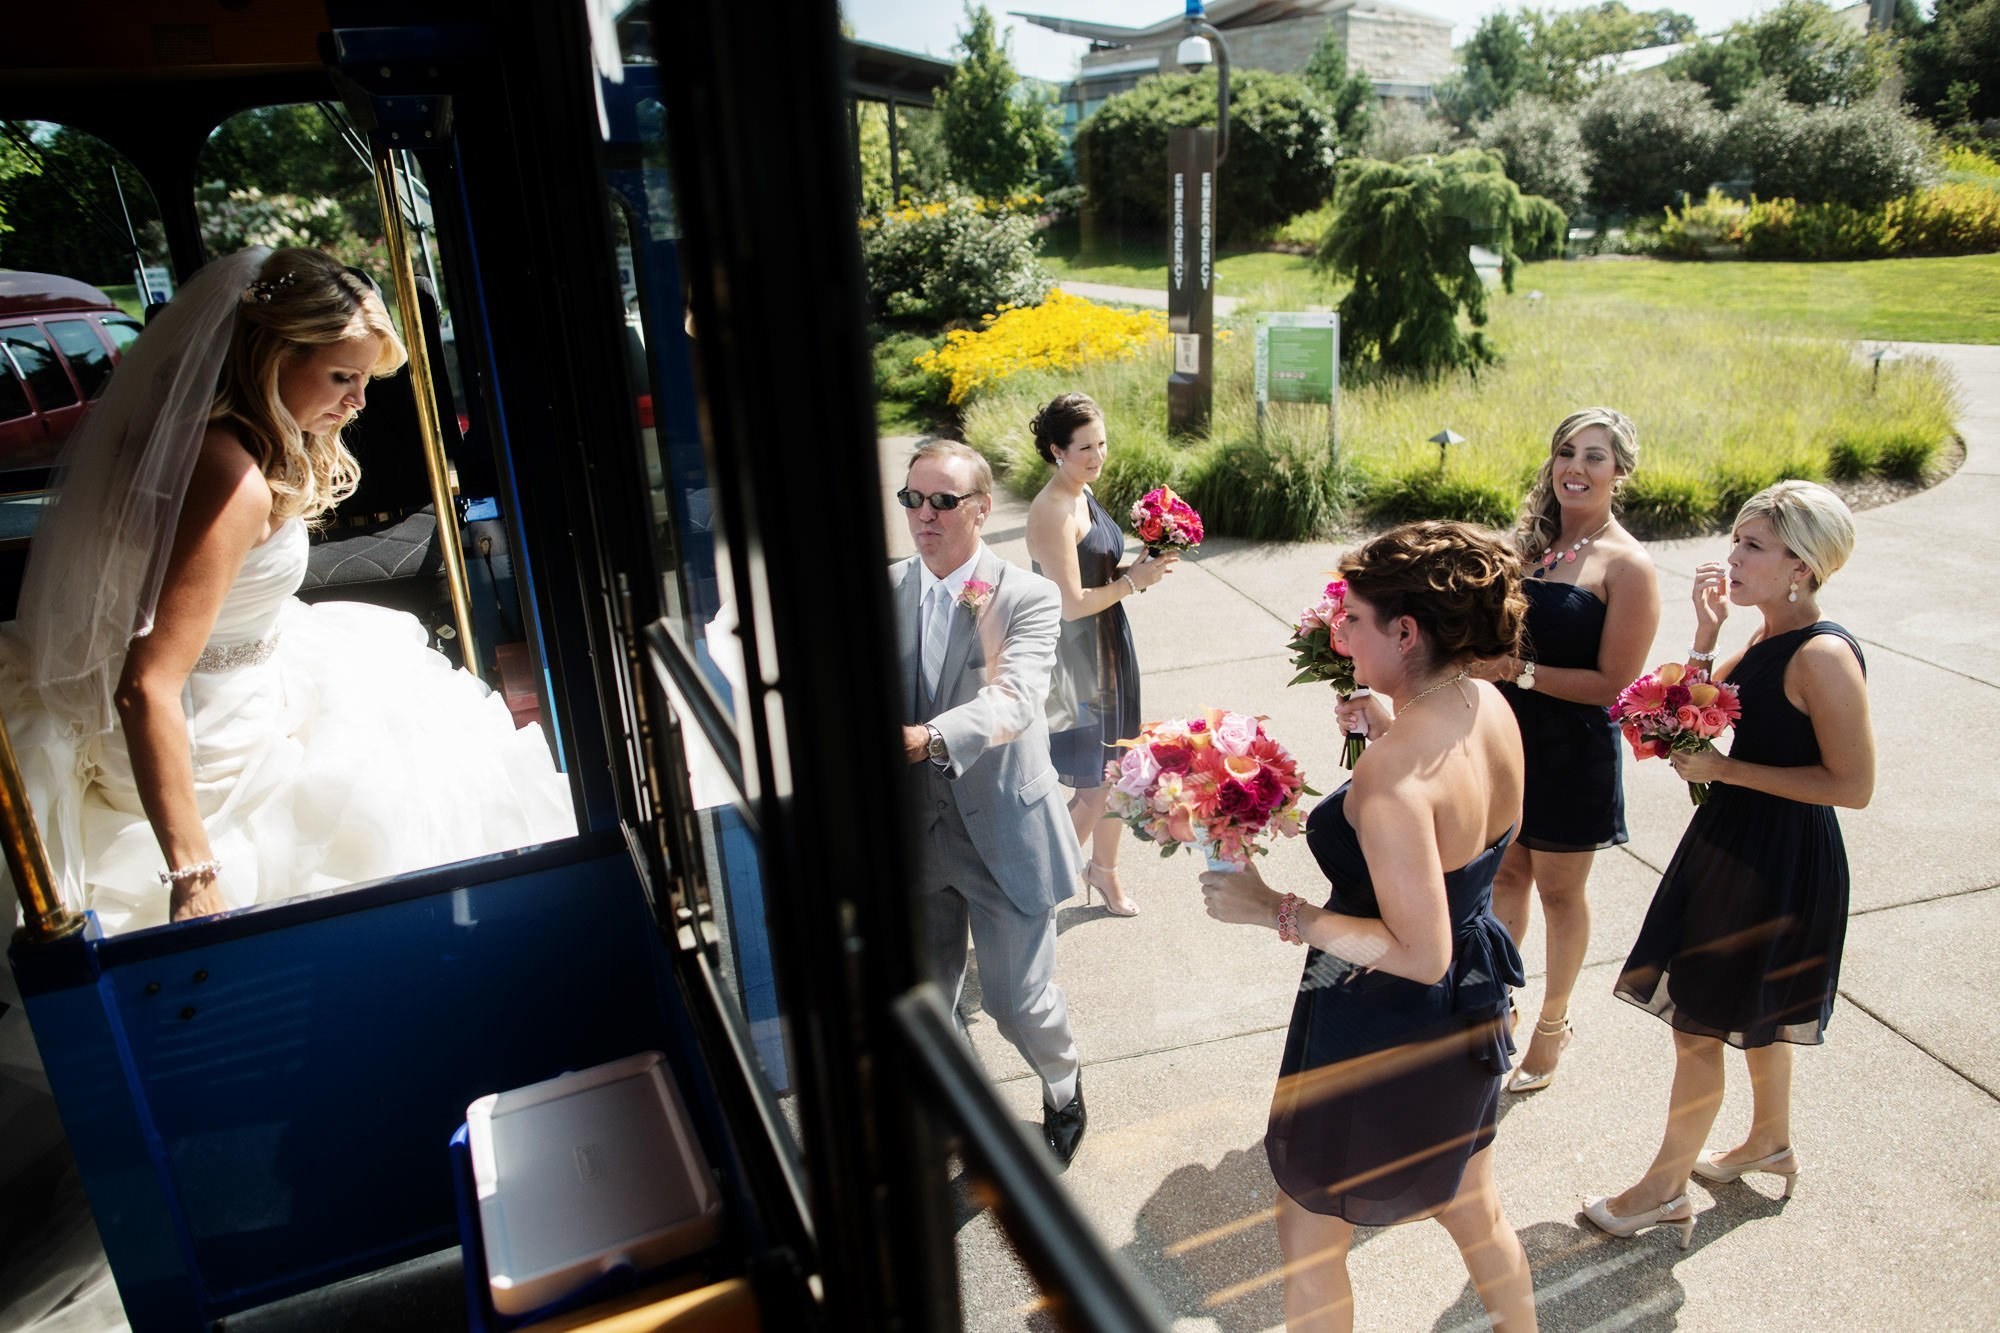 The bride leaves the trolley before the wedding ceremony at the Penn State Arboretum.